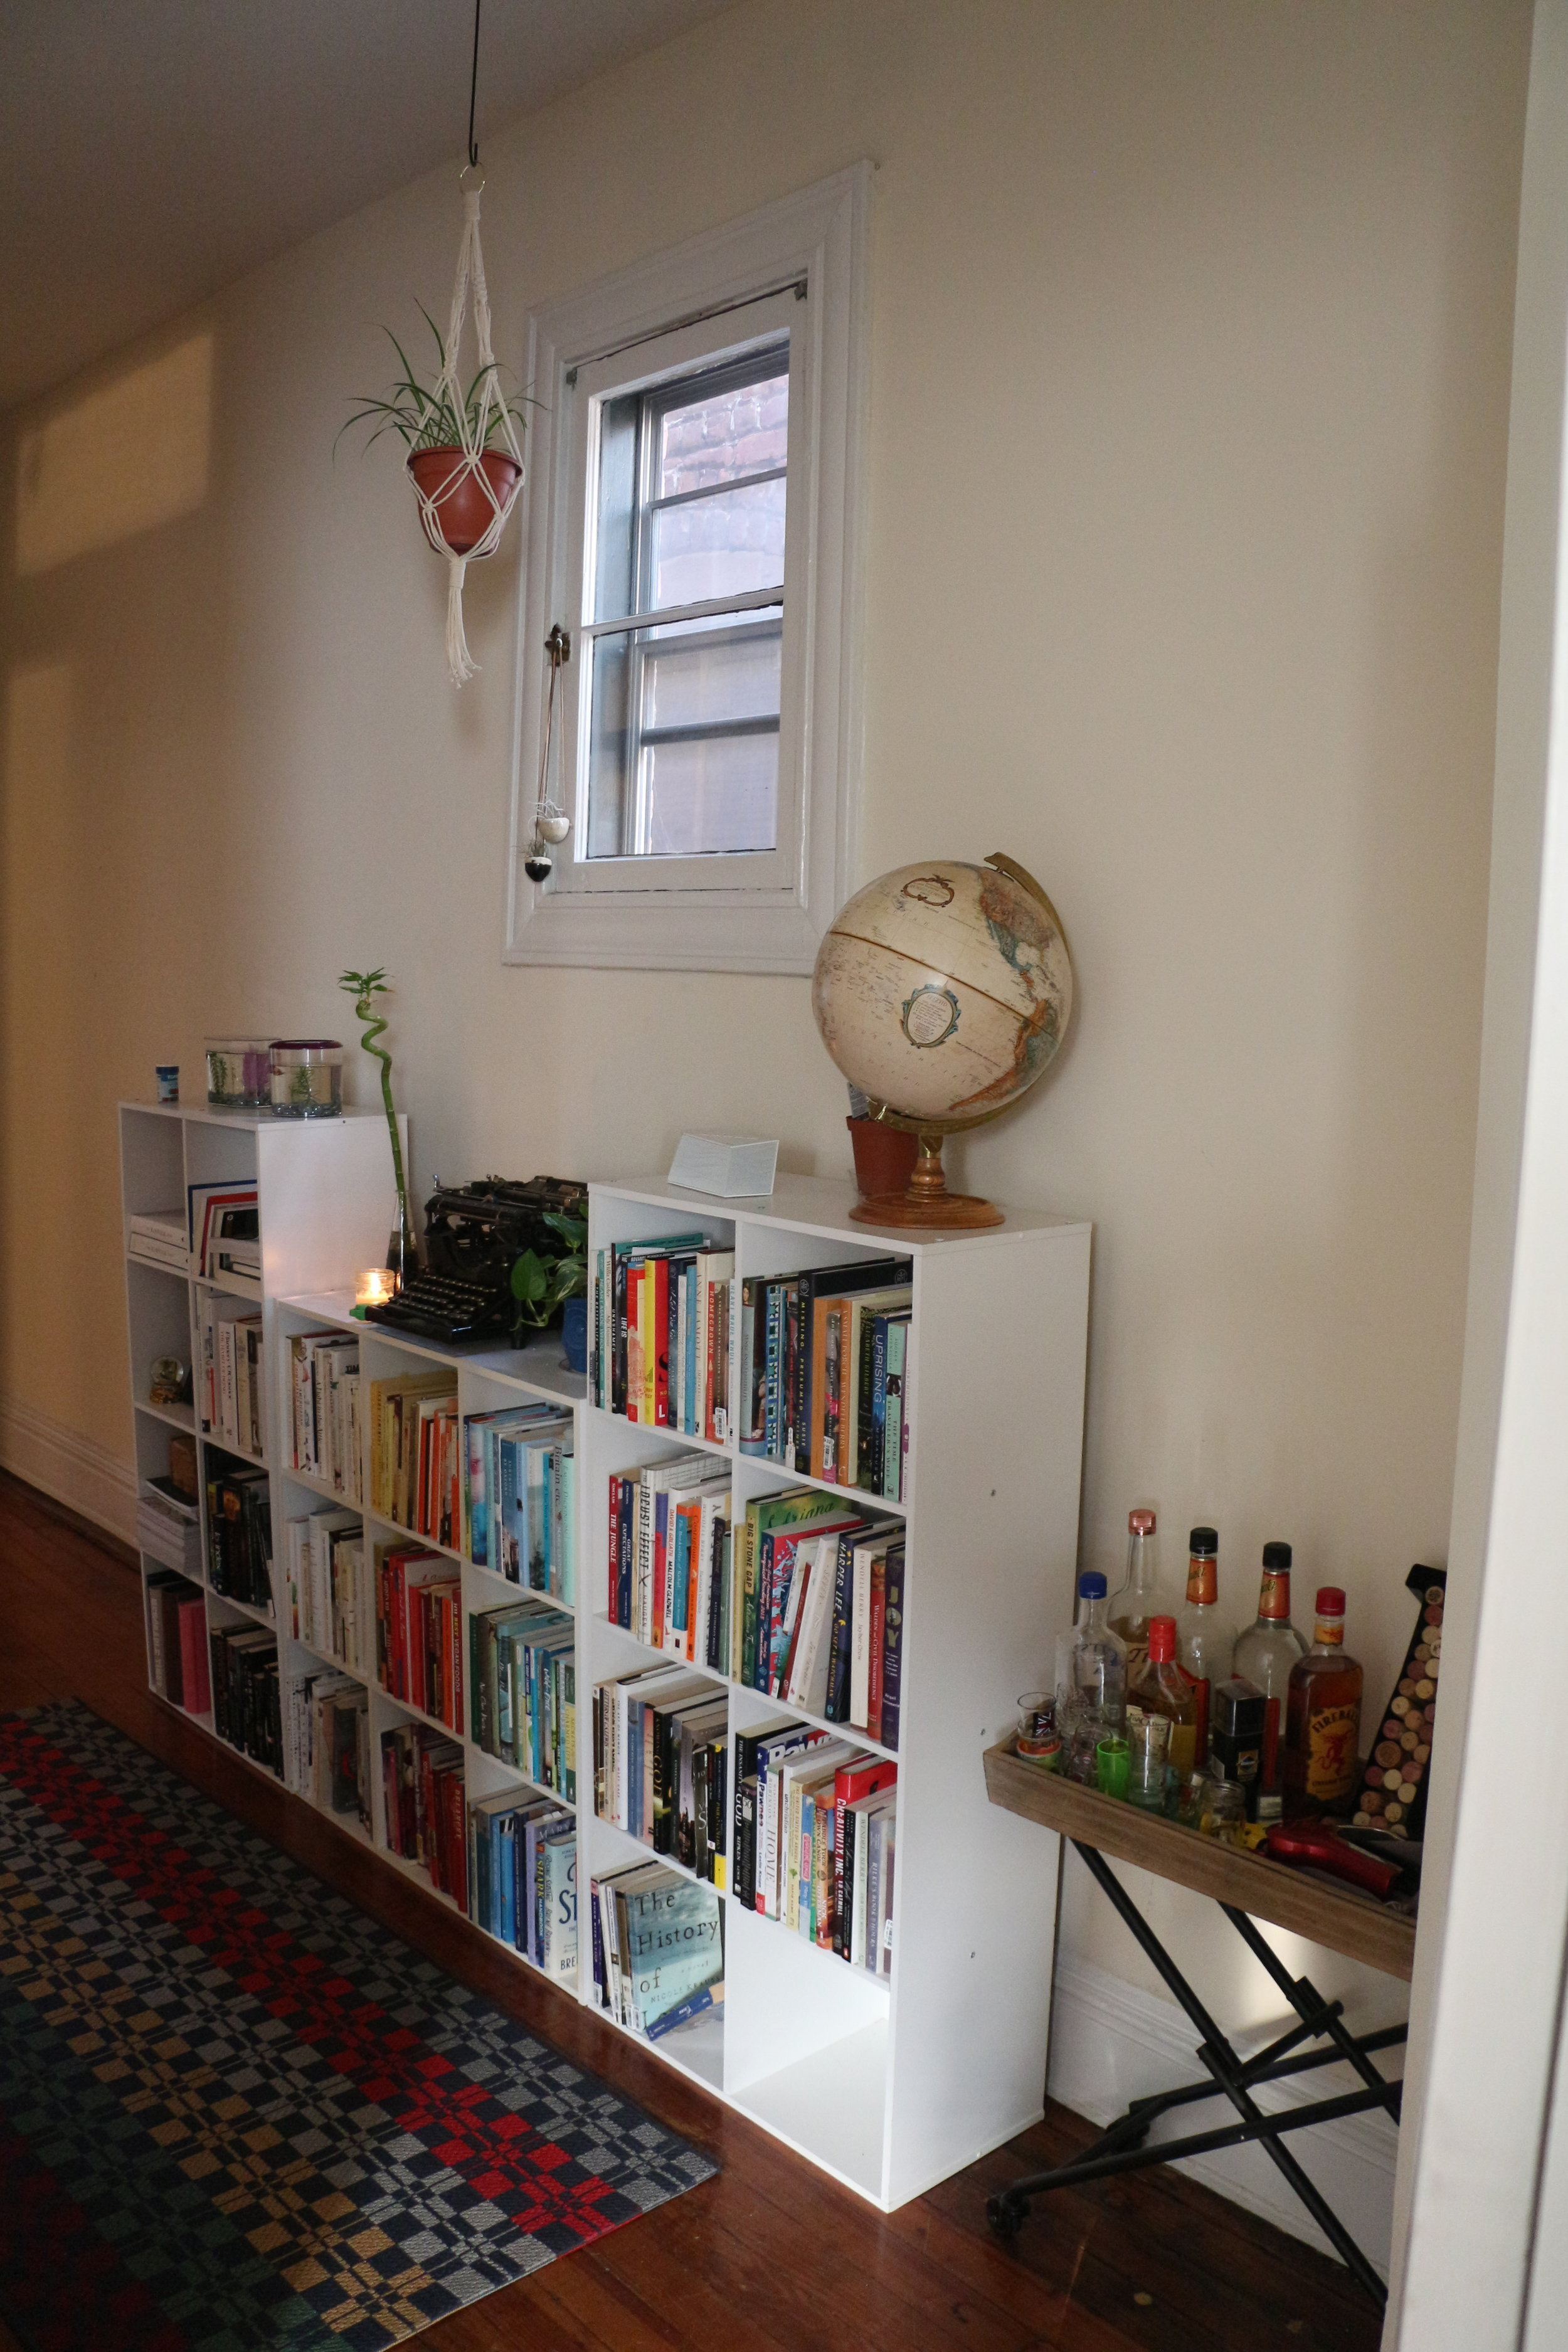 More of the books/bar cart